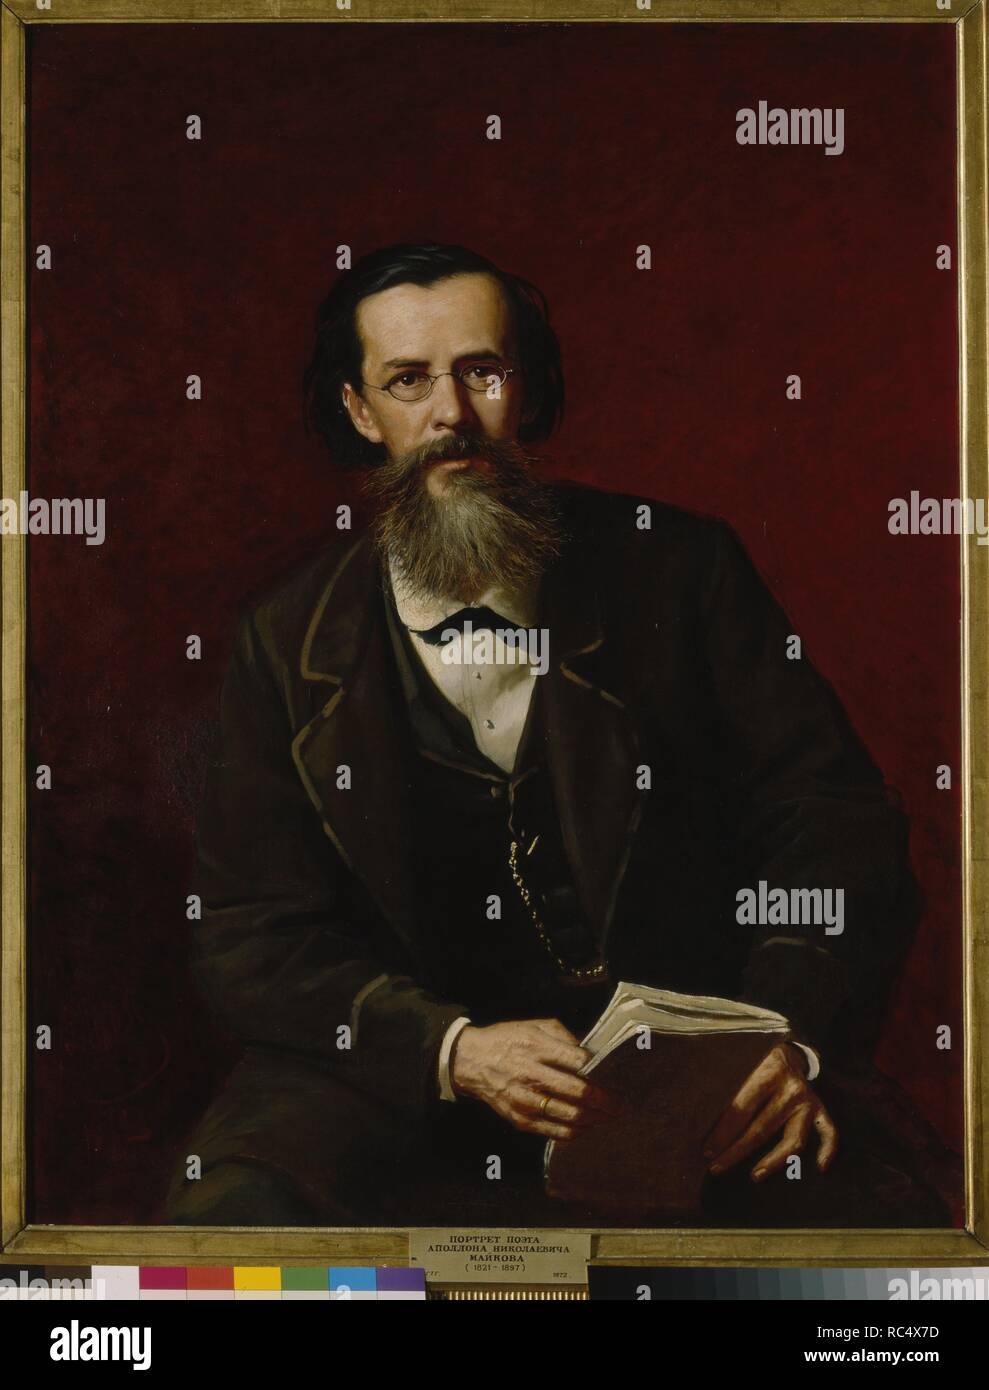 Portrait of the poet Apollon Maykov (1821-1897). Museum: State Tretyakov Gallery, Moscow. Author: Perov, Vasili Grigoryevich. - Stock Image